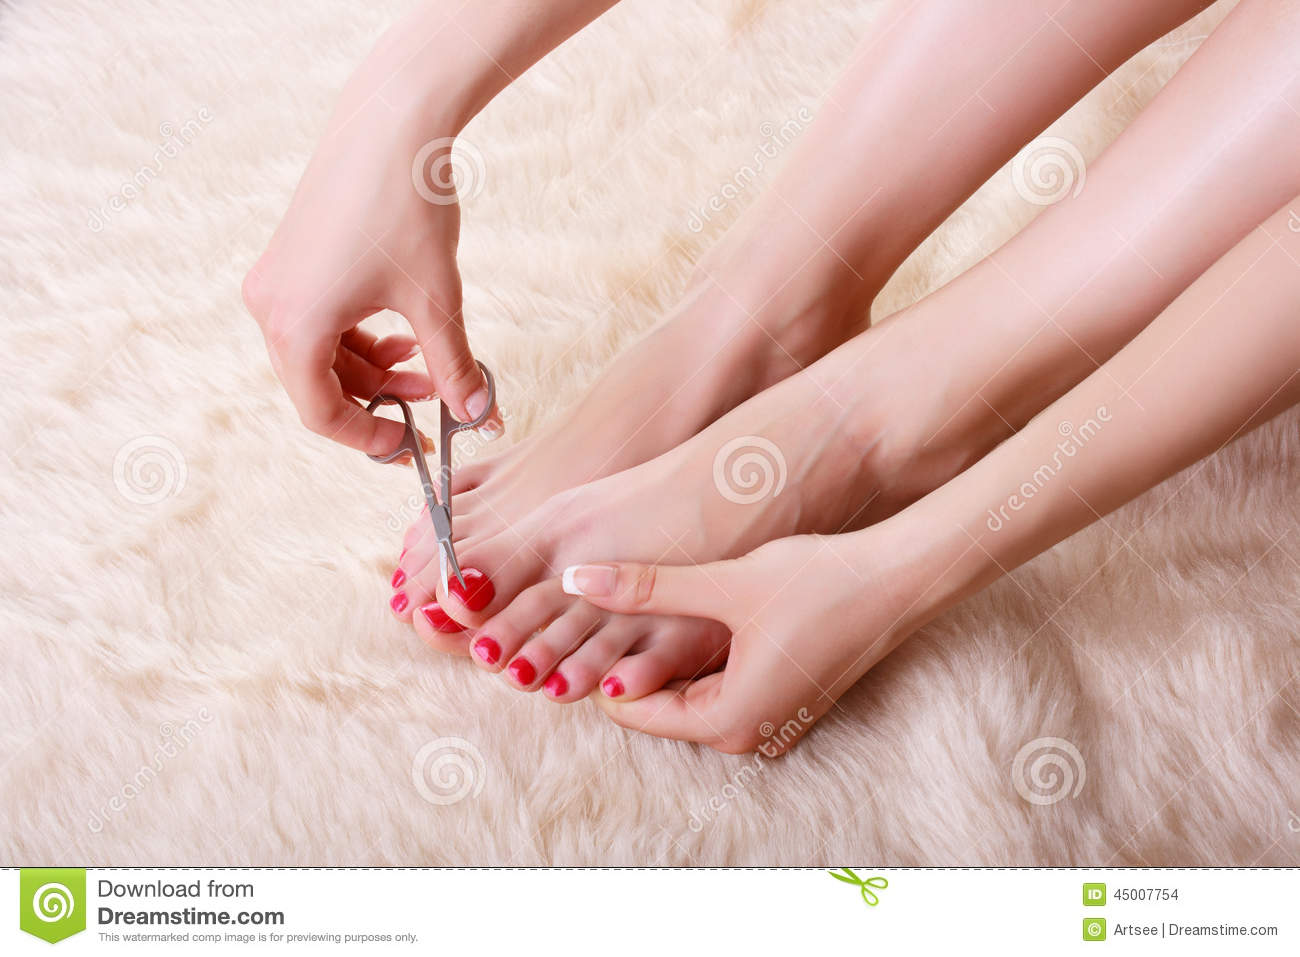 Attractive Young Woman Cutting Her Feet Nails Stock Photo - Image of ...